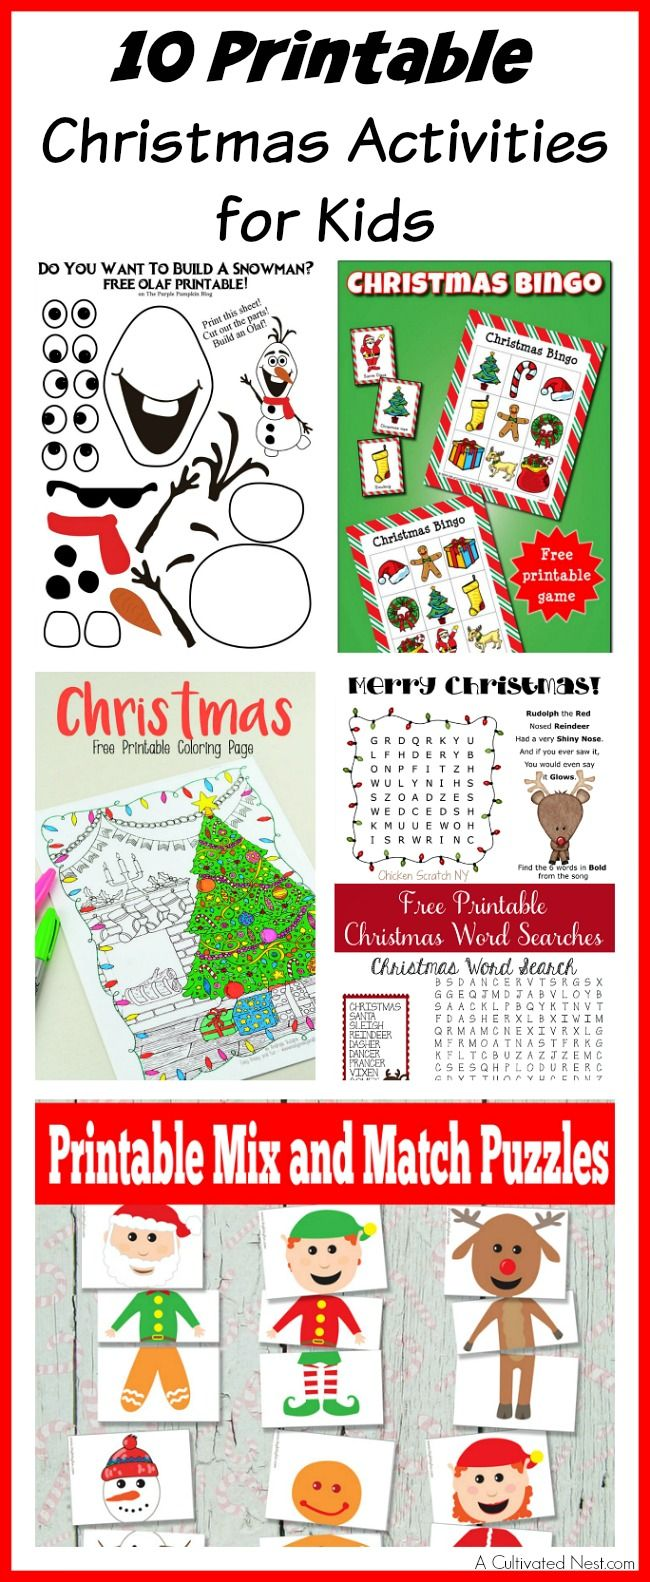 Christmas is nearly here! Help keep your kids busy until the big day with these 10 free printable Christmas activities for kids!